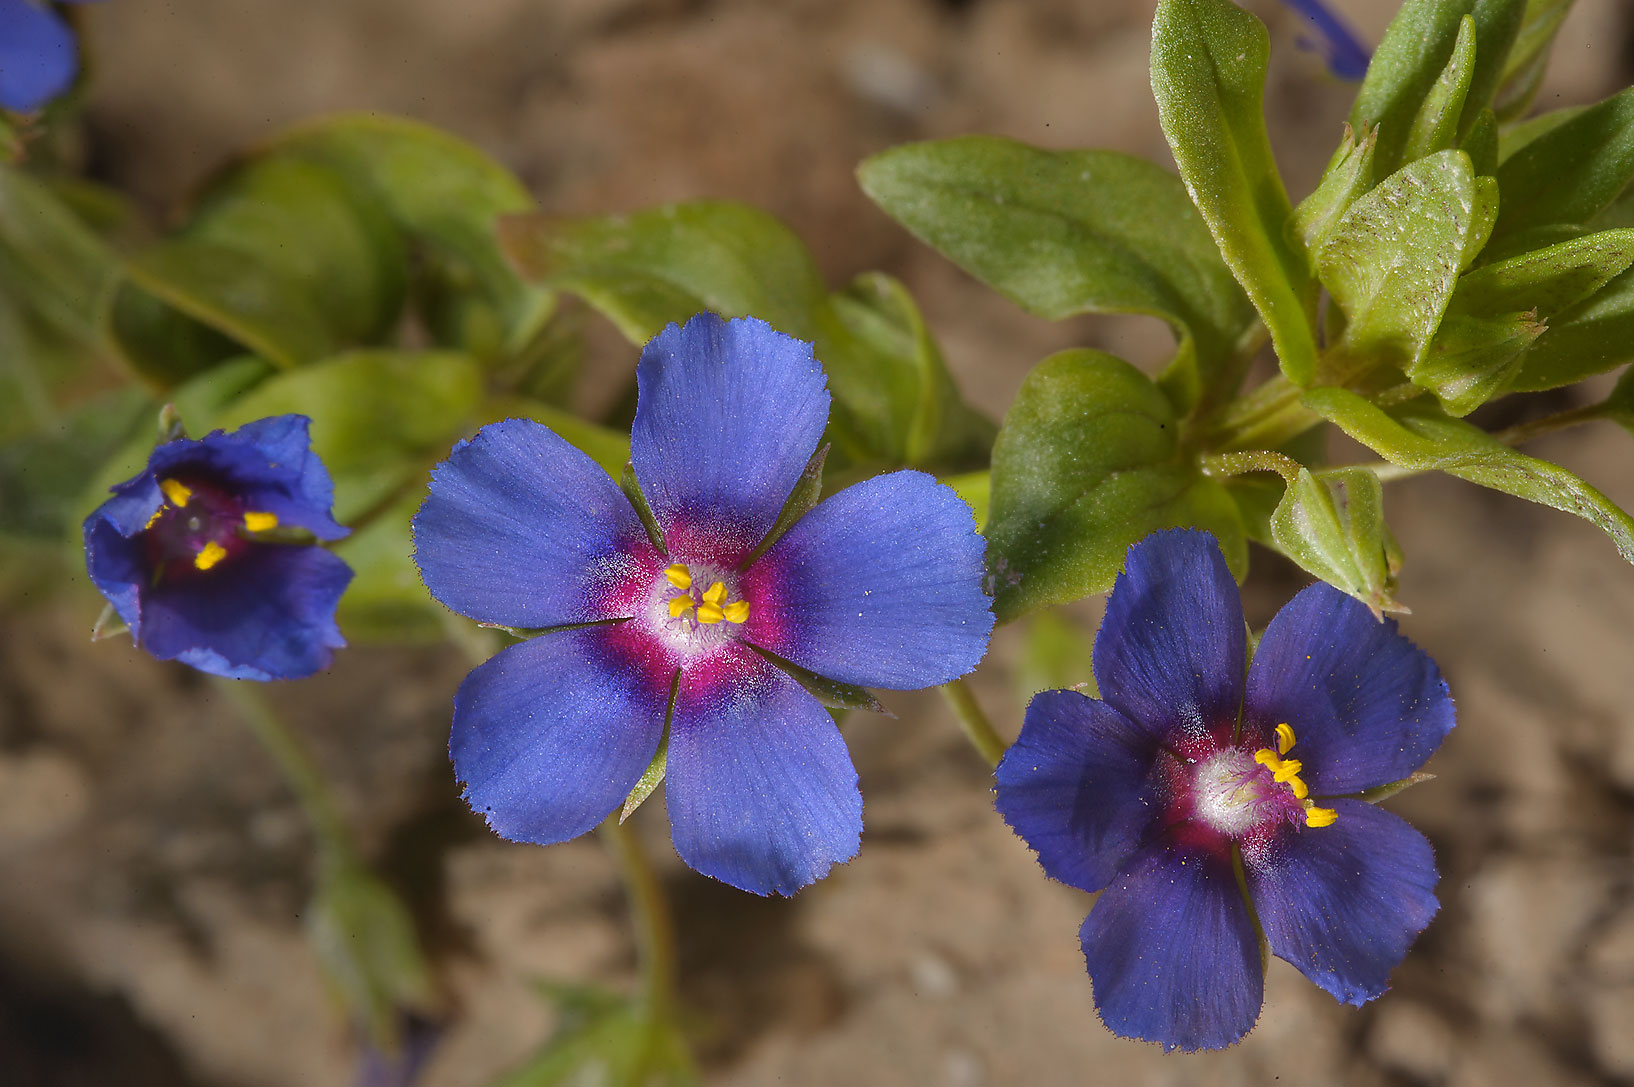 Blue flowers of scarlet pimpernel (Anagallis...farms area, in north-western Qatar